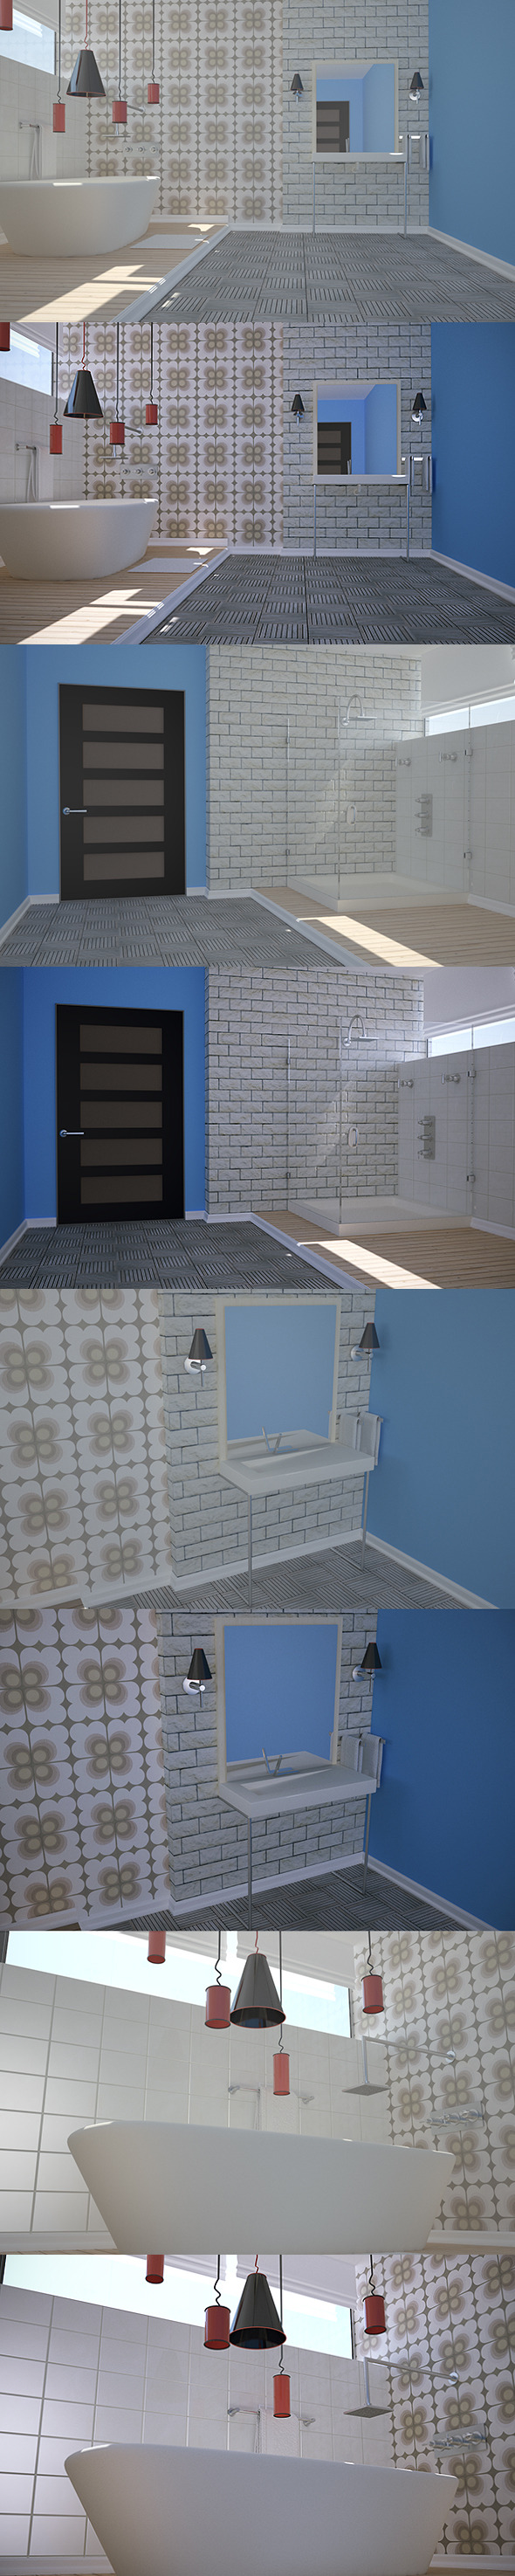 3DOcean Bathroom Design VrayC4D 5130237